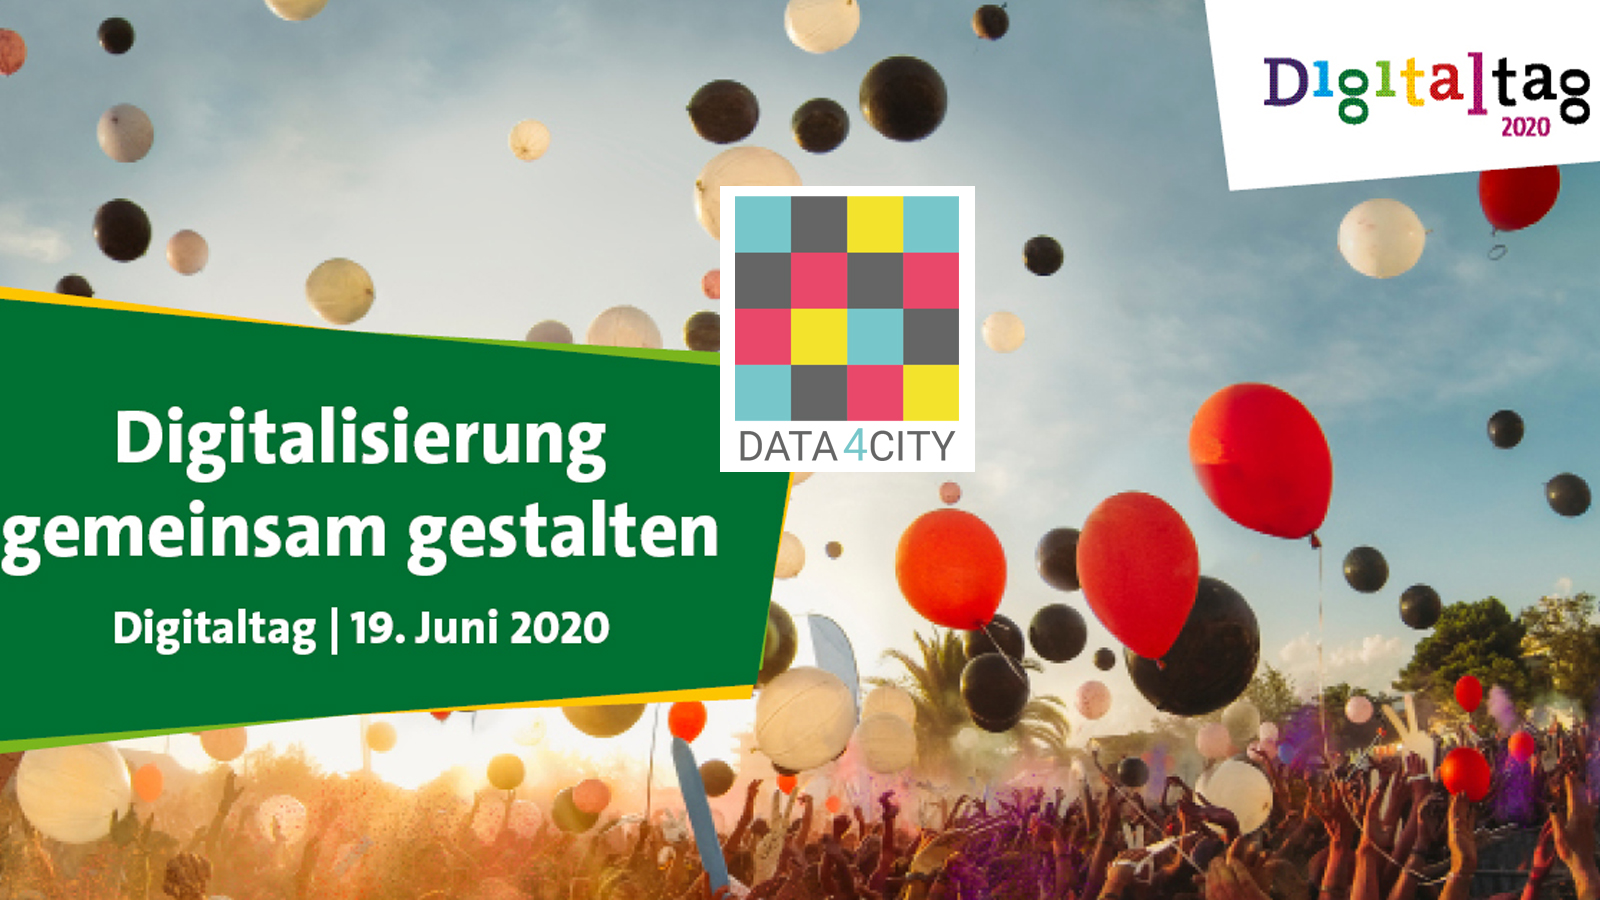 Digitaltag 2020: Wie Data4City #digitalesmiteinander fördert